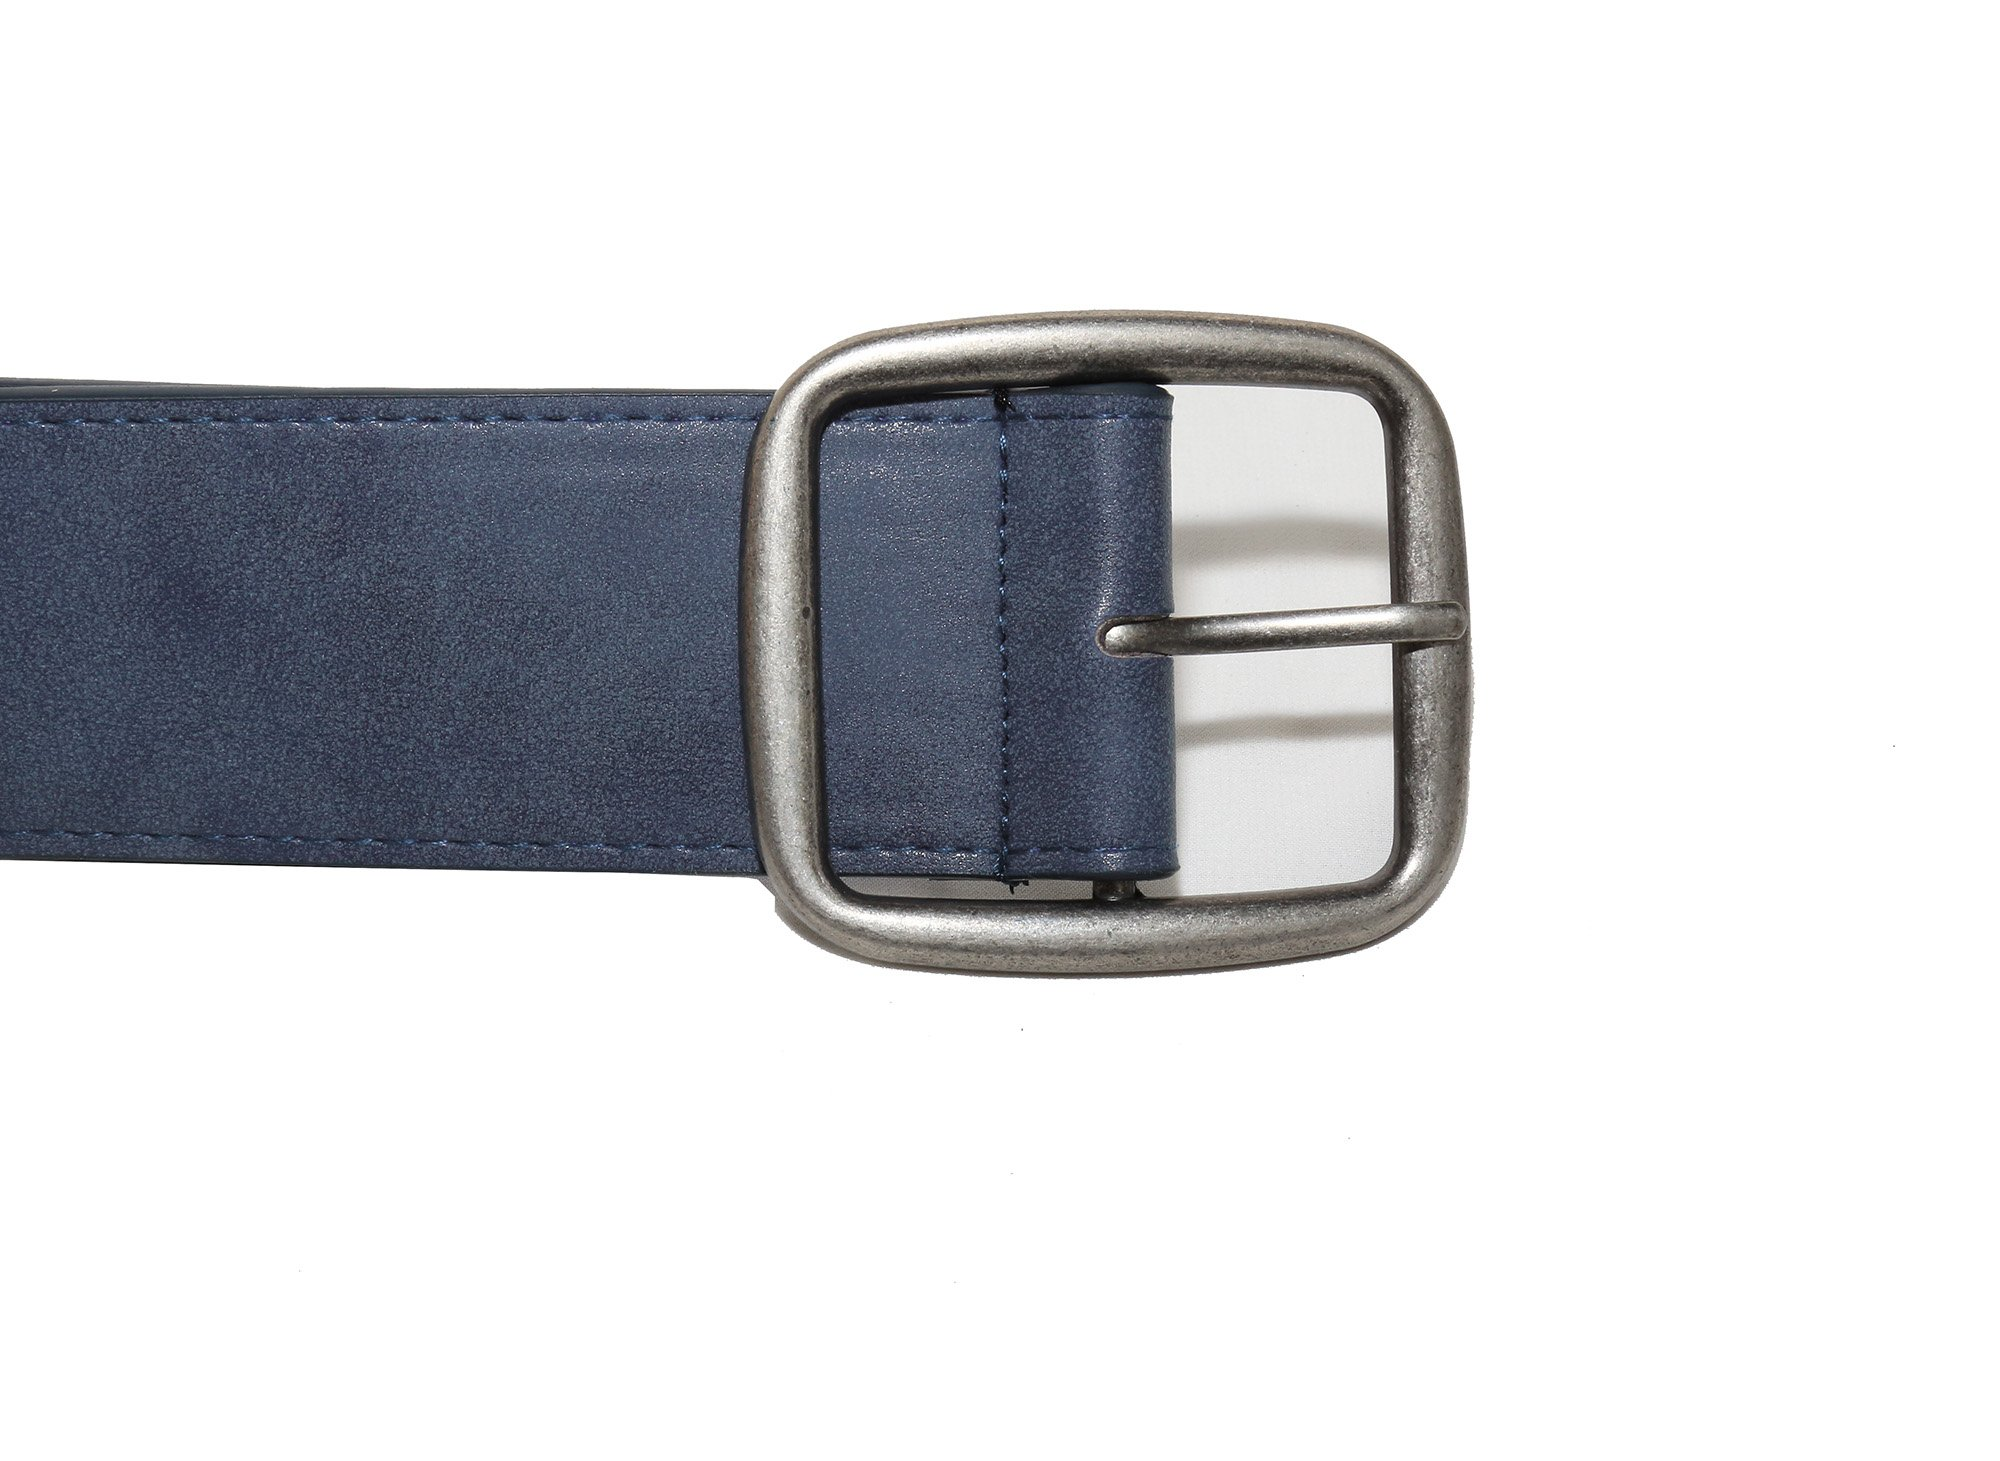 Modeway Women 2'' Wide Suede Leather Silver Square Buckle Adjustable Waist Belts (S-M, Navy-4#) by Modeway (Image #7)